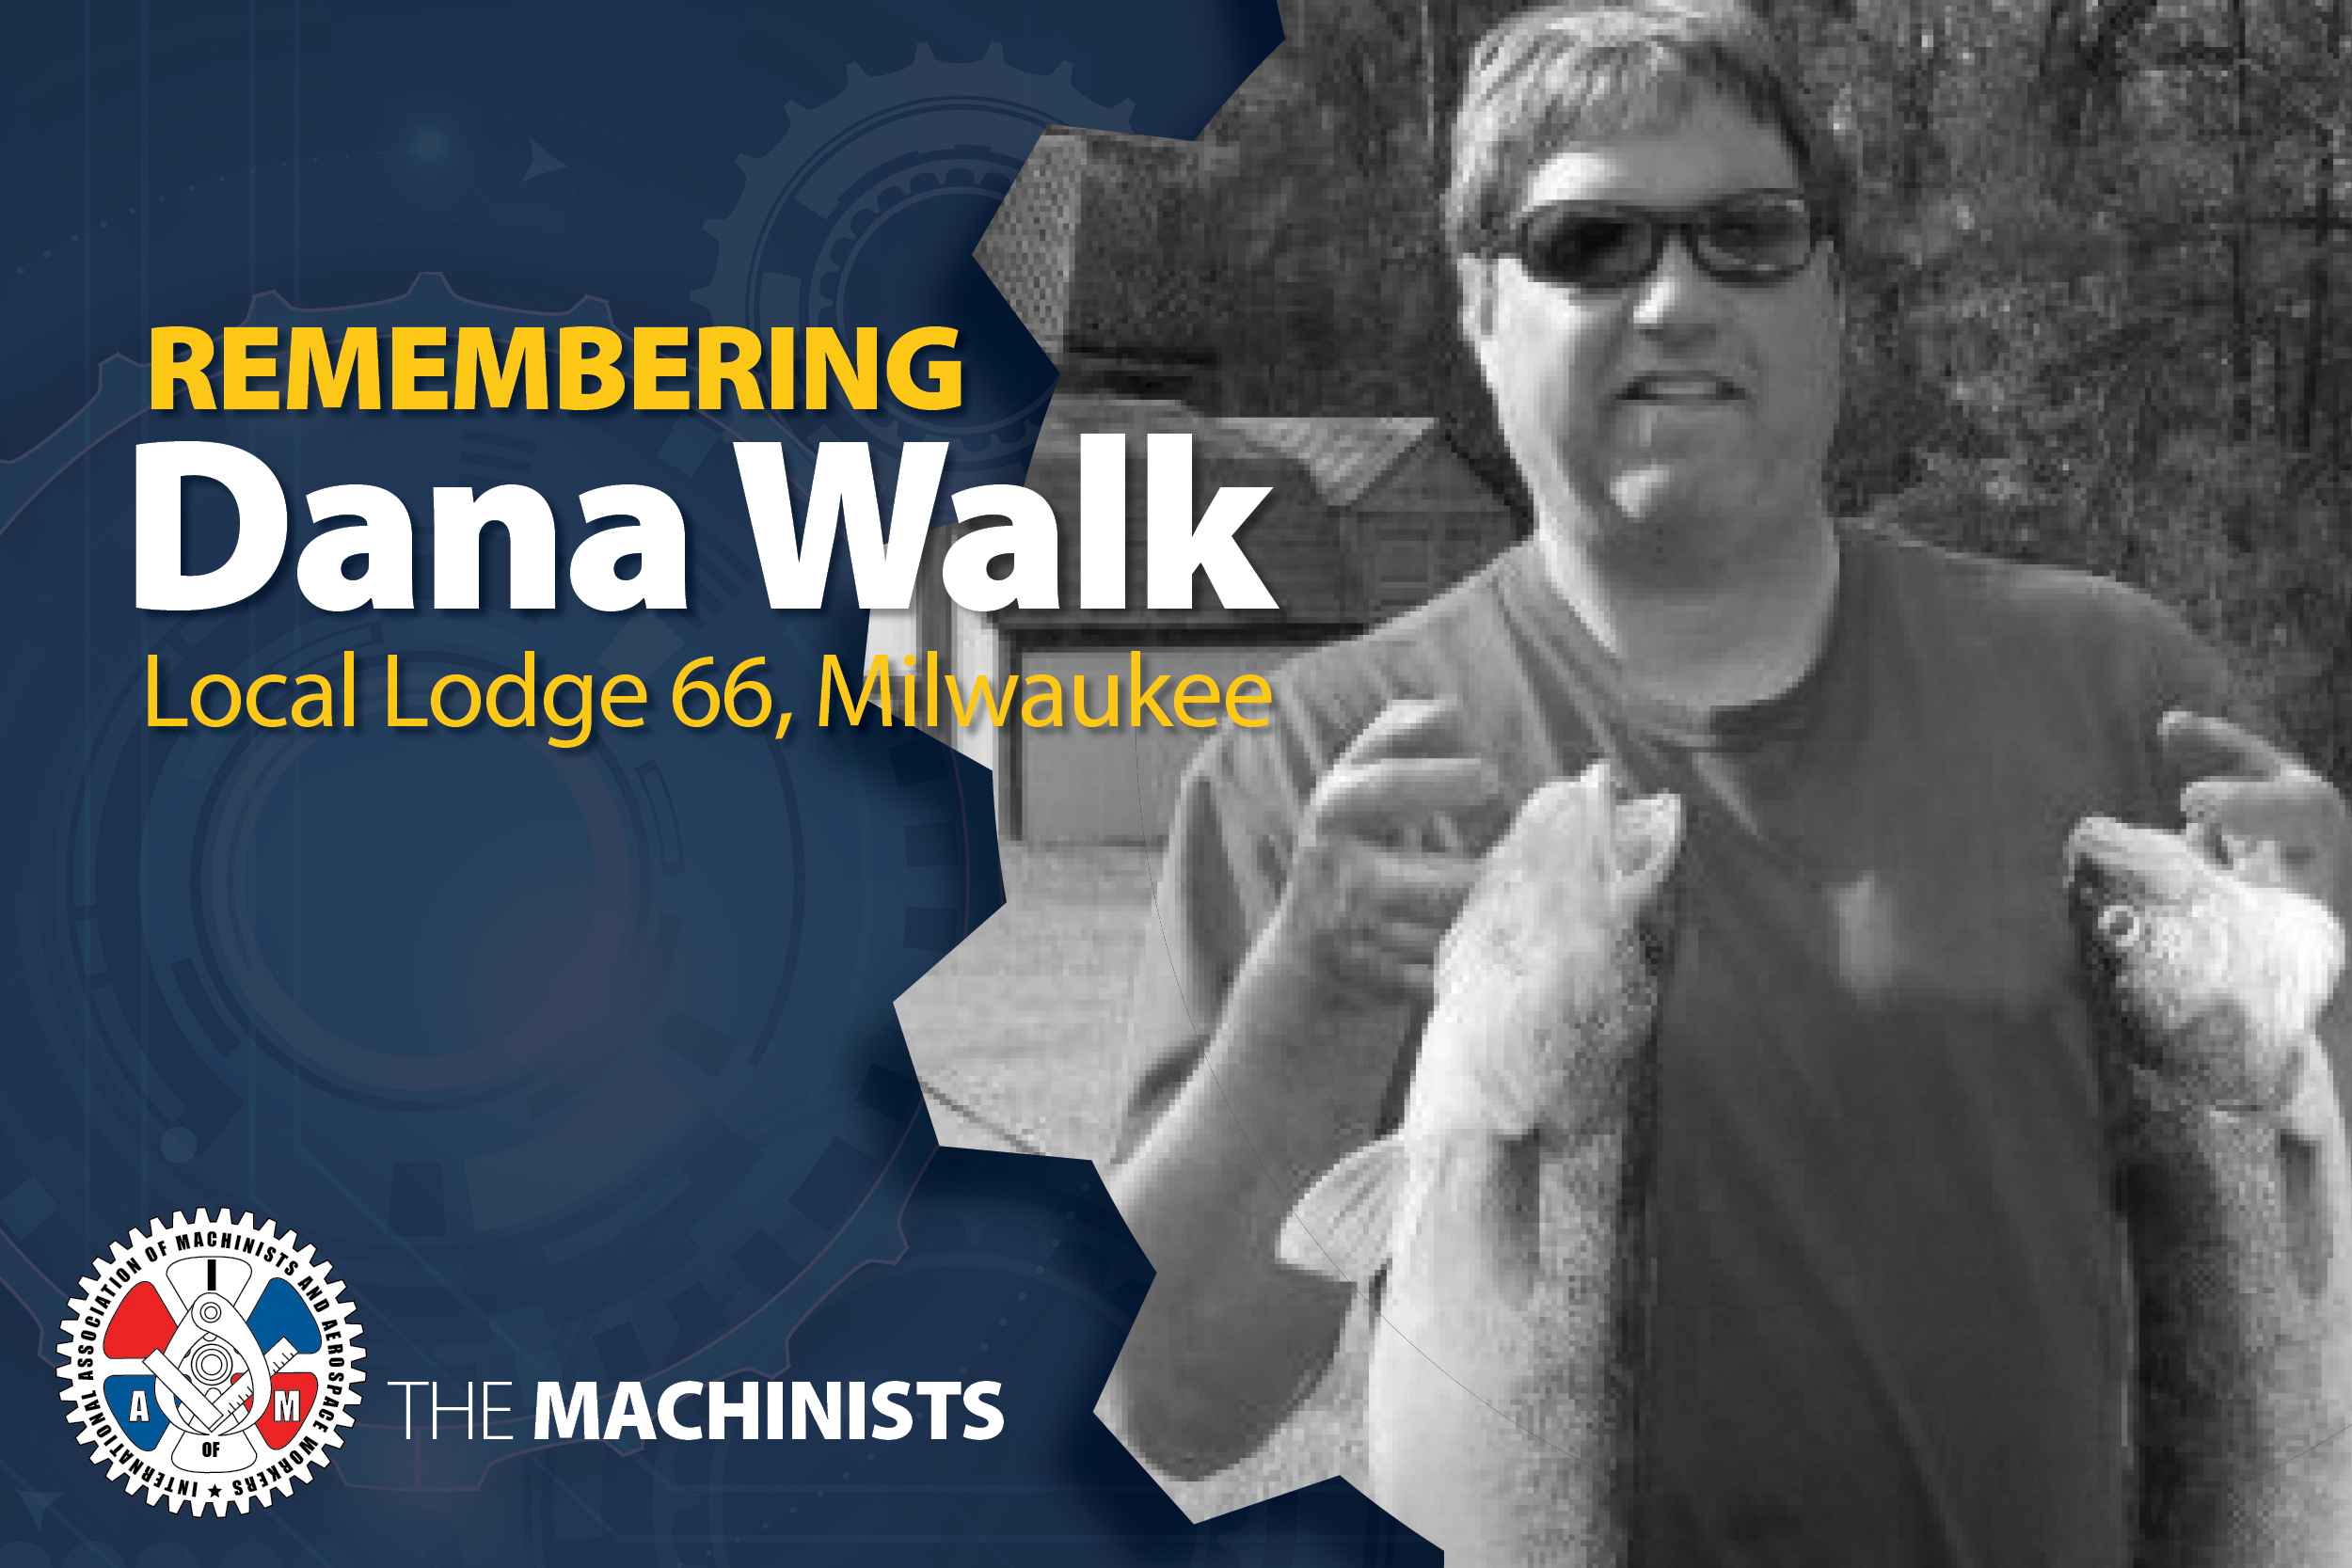 Machinists Union Statement on IAM Local 66 Member Killed in Milwaukee Shooting